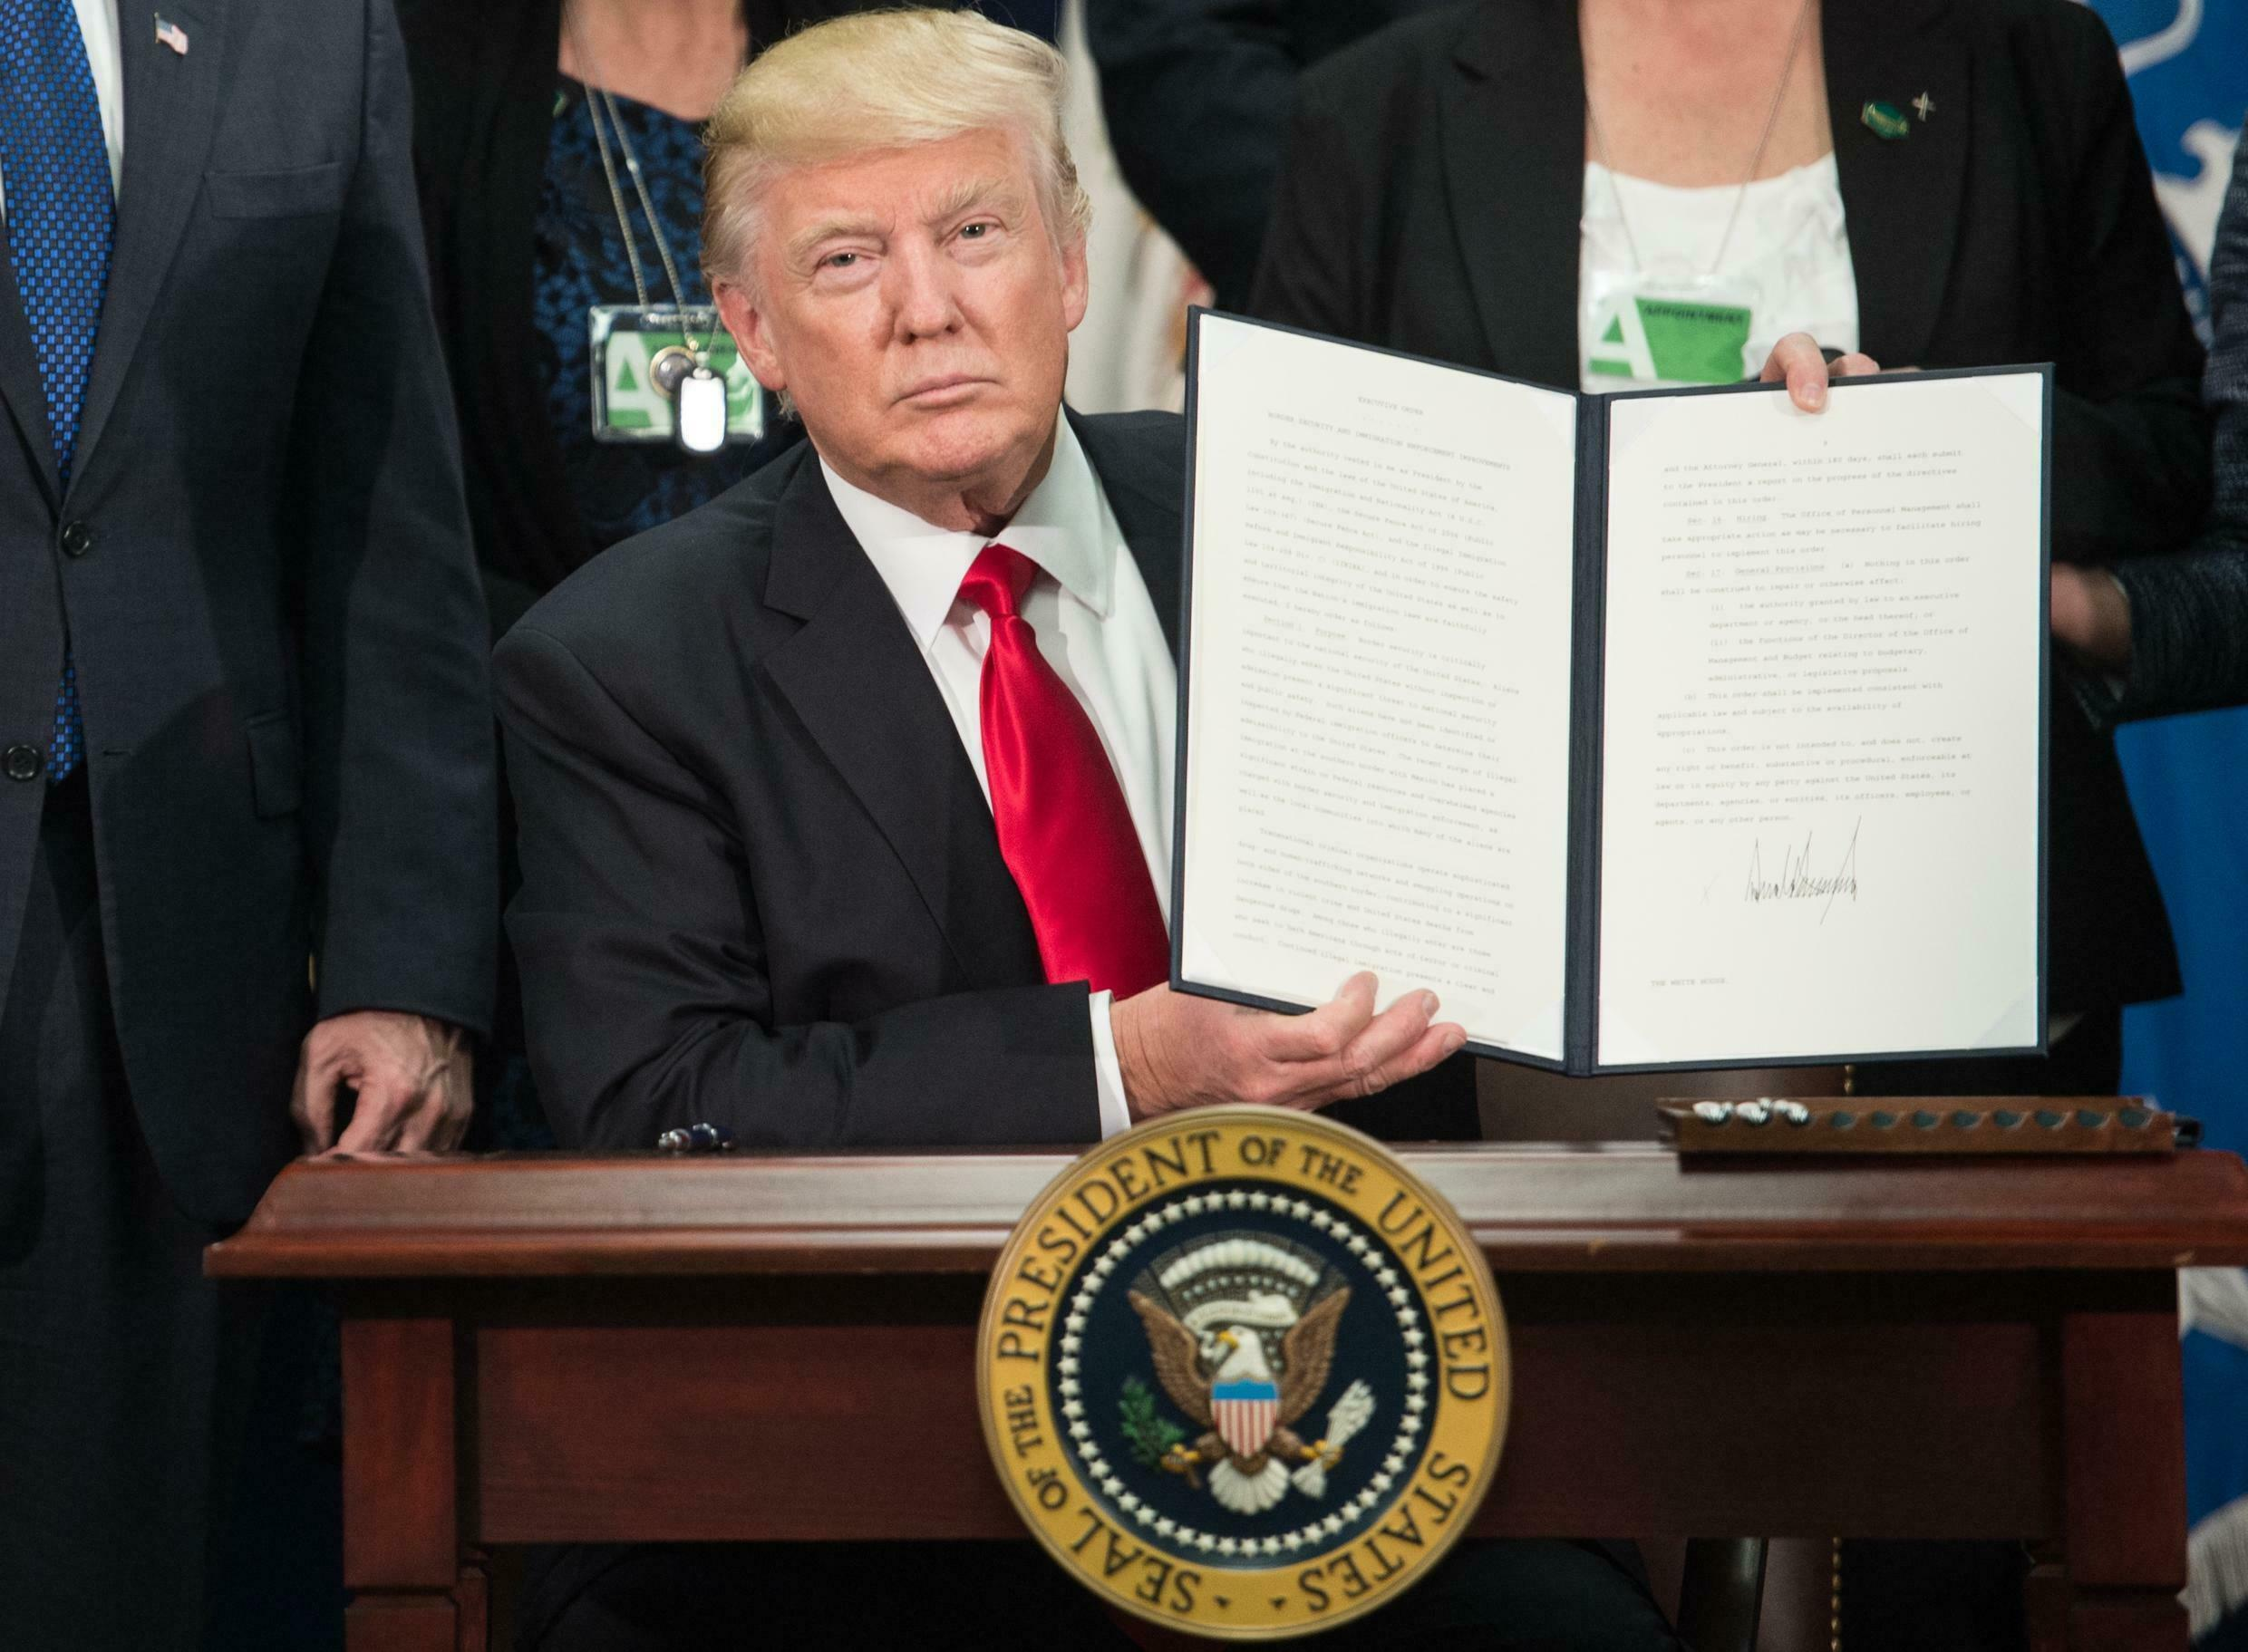 President Donald Trump signing the executive order to launch the proposed wall along the US-Mexico border January 25, 2017 in Washington.